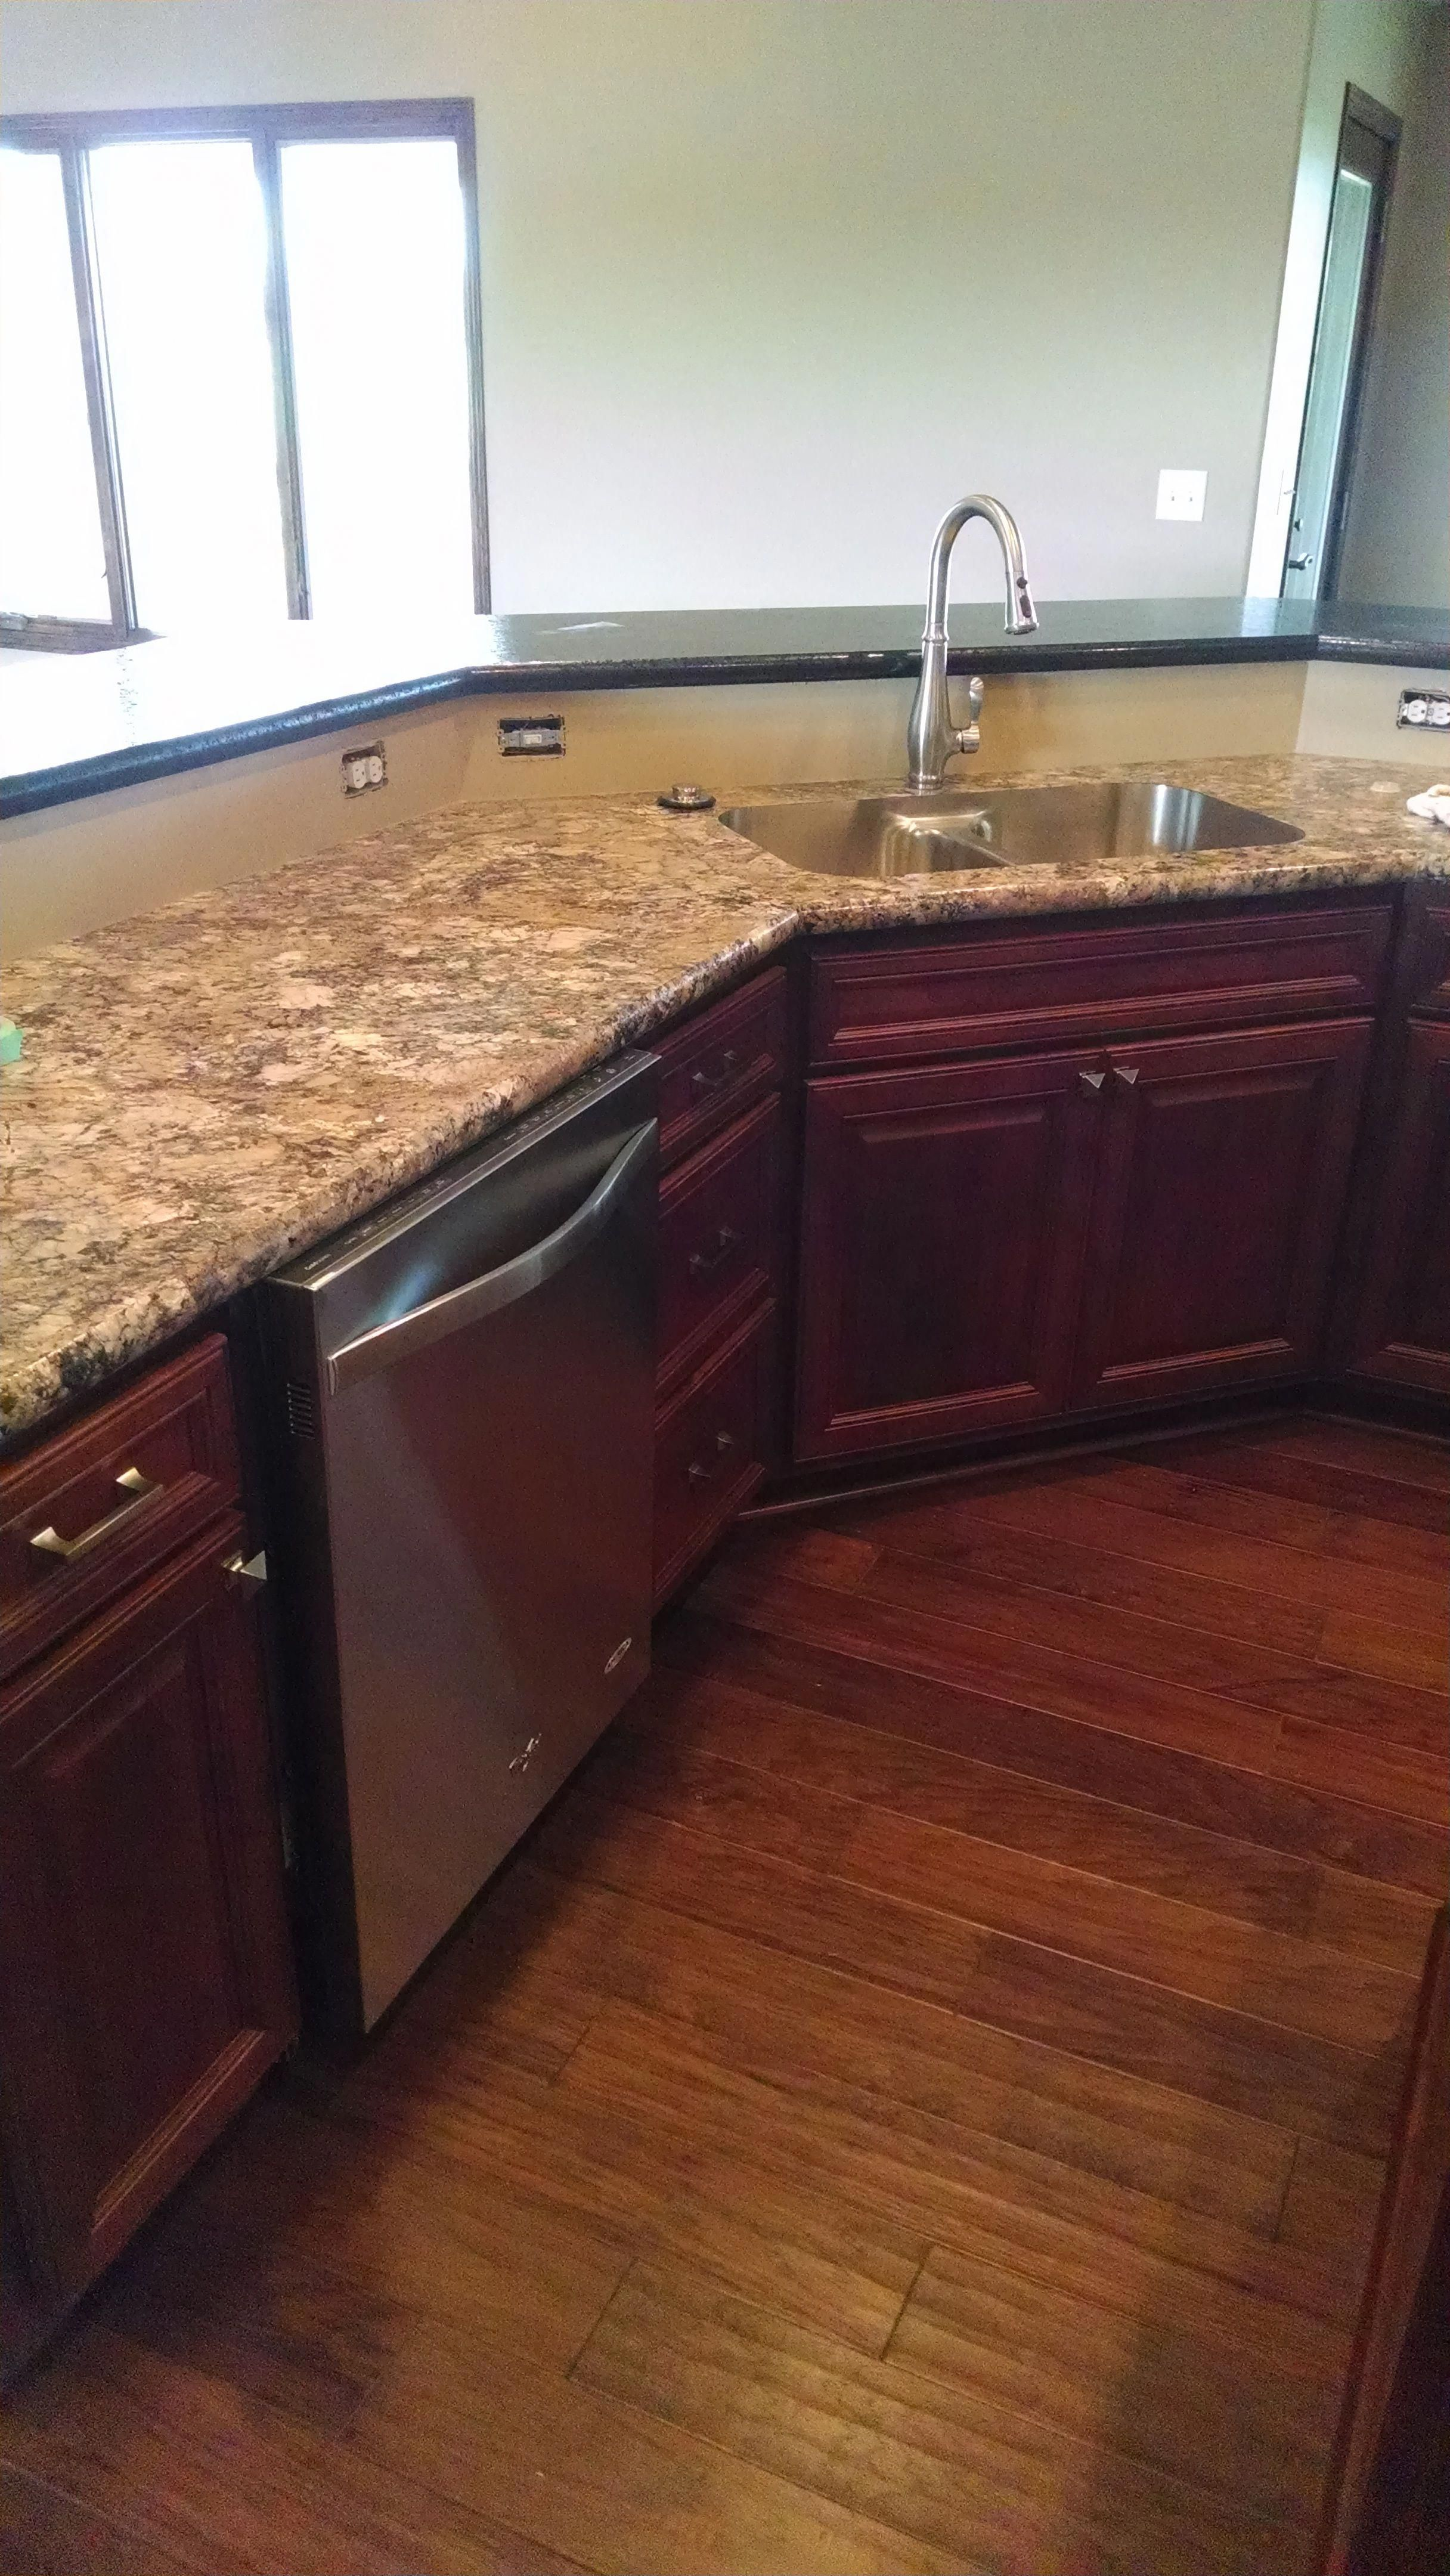 Birch Cabinets With Brandy Stain Wilsonart Winter Carnival Laminate With Karran Stainles Laminate Countertops Kitchen Countertops Kitchen Countertops Pictures